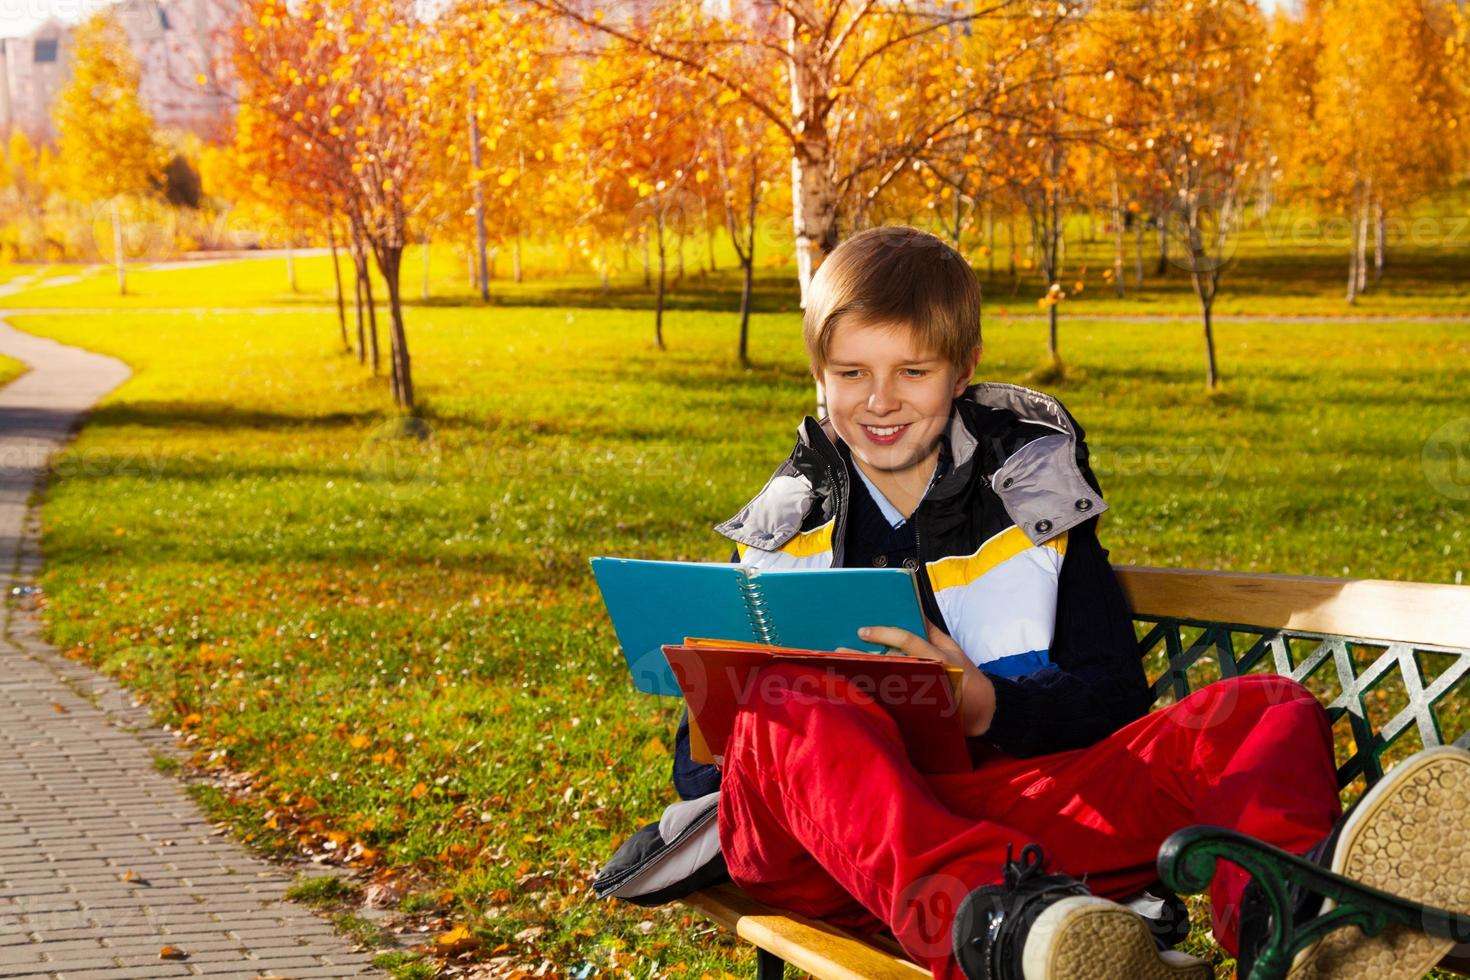 Smiling boy with textbook photo